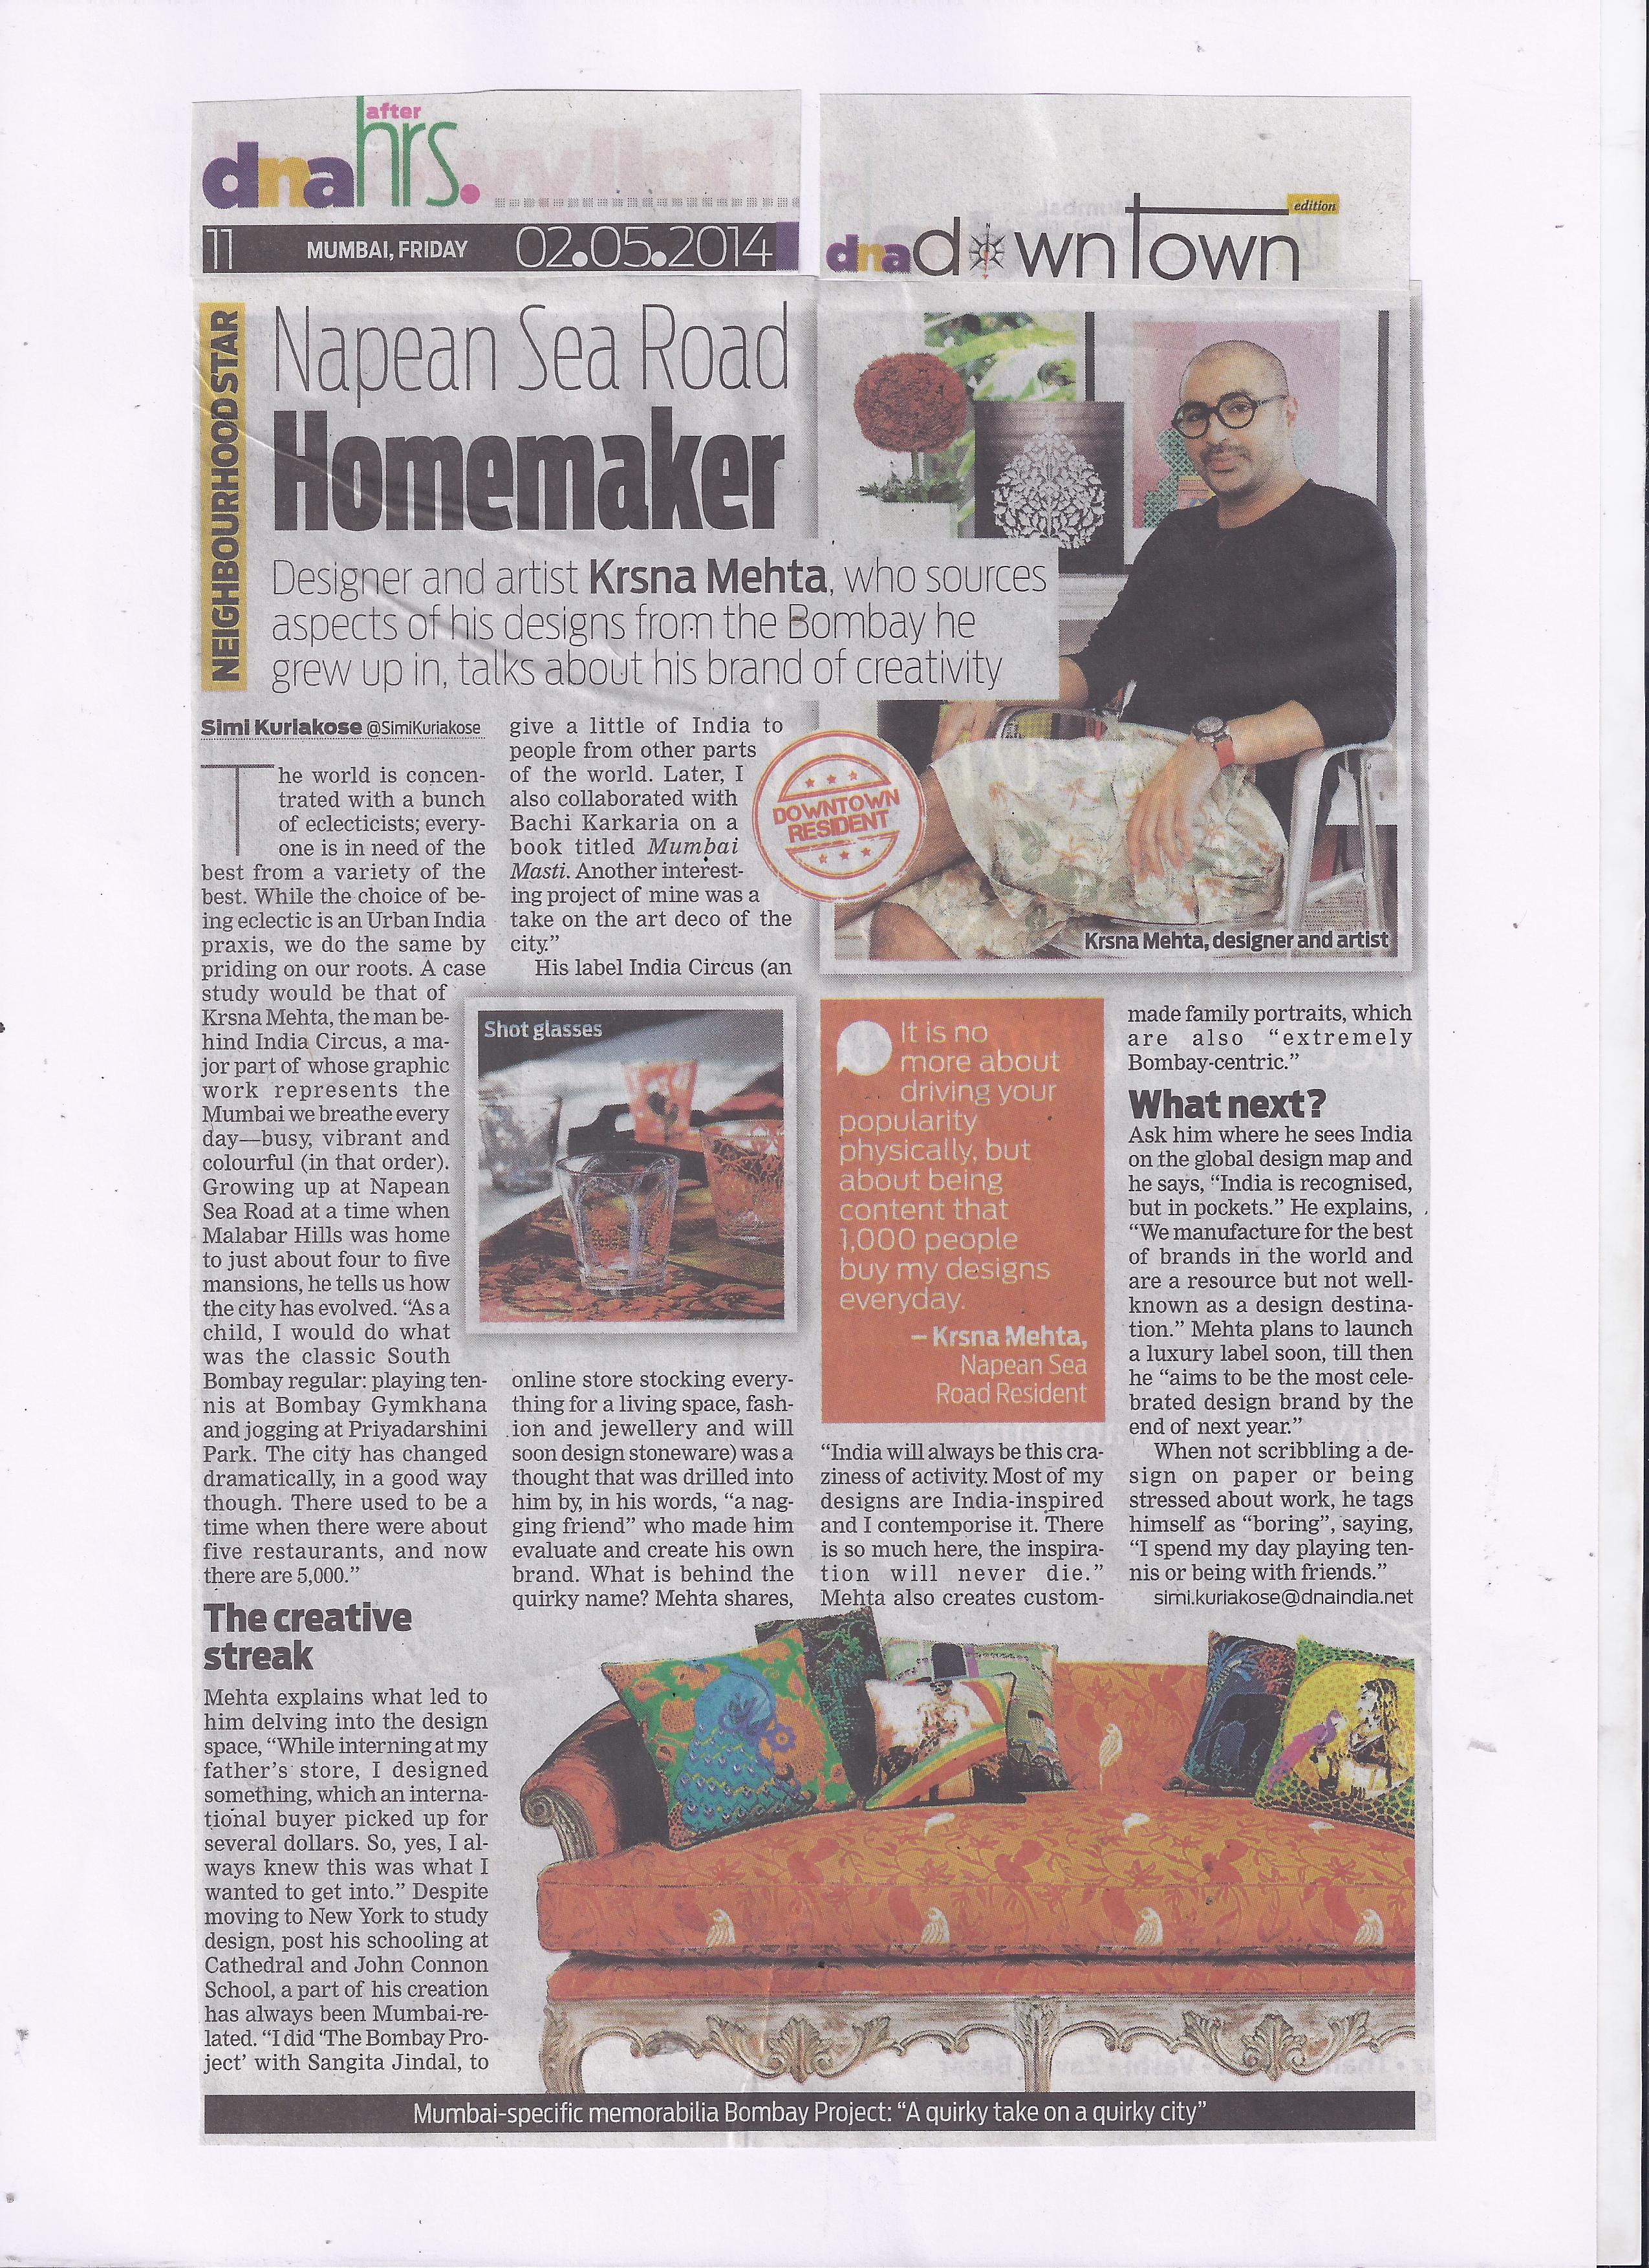 India Circus featured in DNA after hrs.